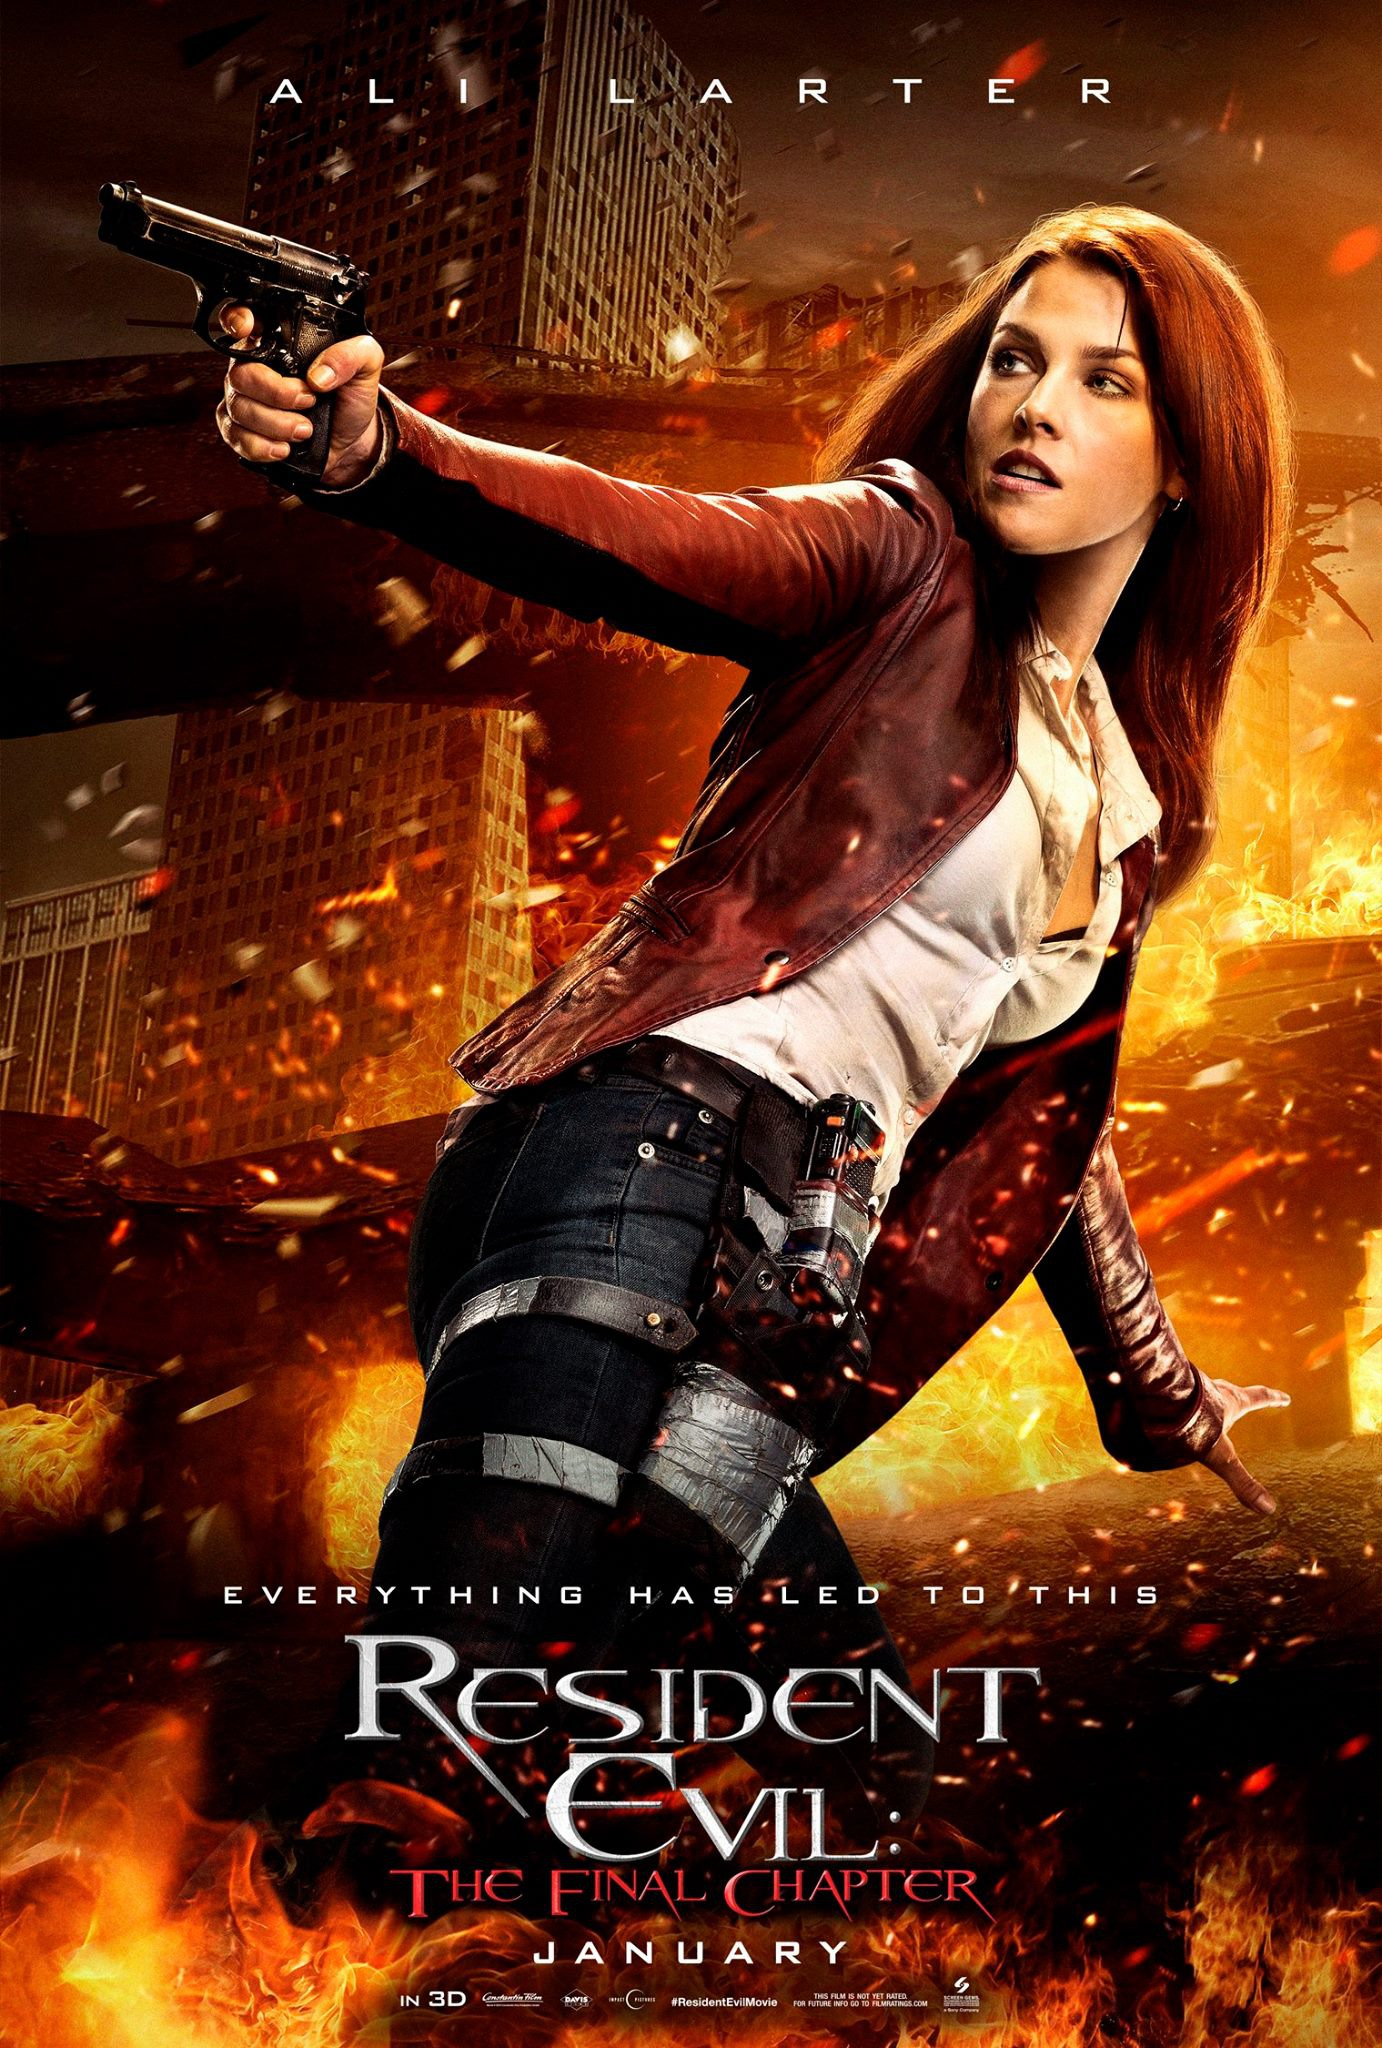 Resident Evil: The Final Chapter - Character Poster - Claire